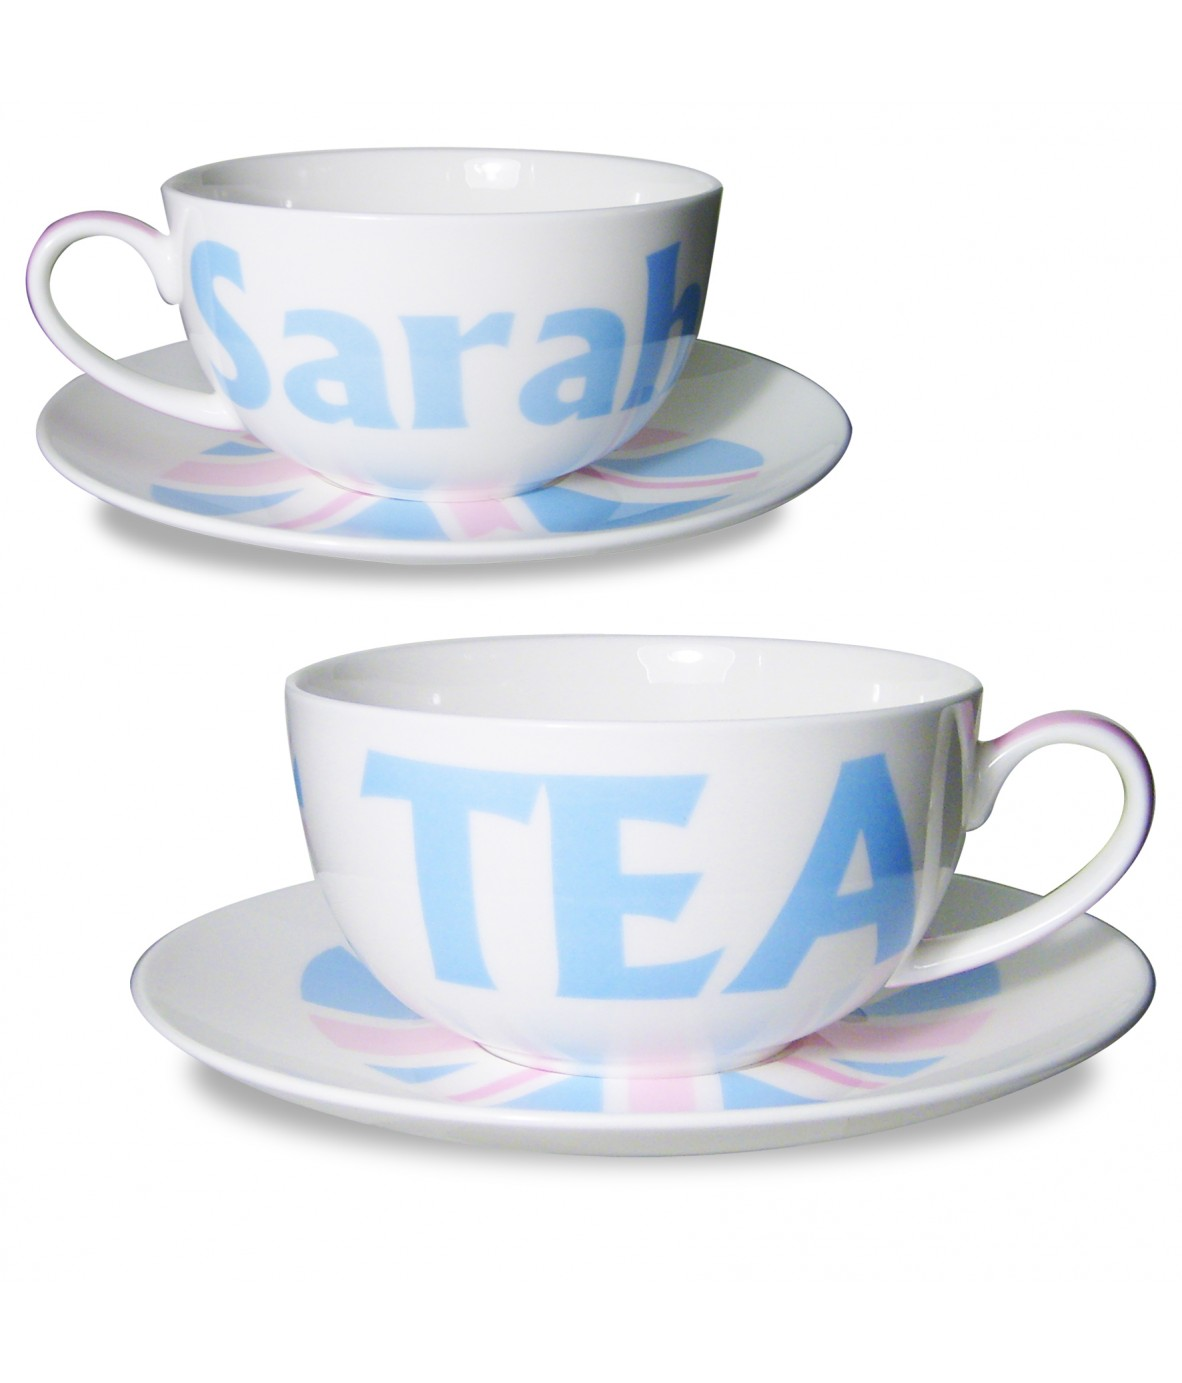 Personalised Blue Union Jack Teacup Saucer Just For Gifts